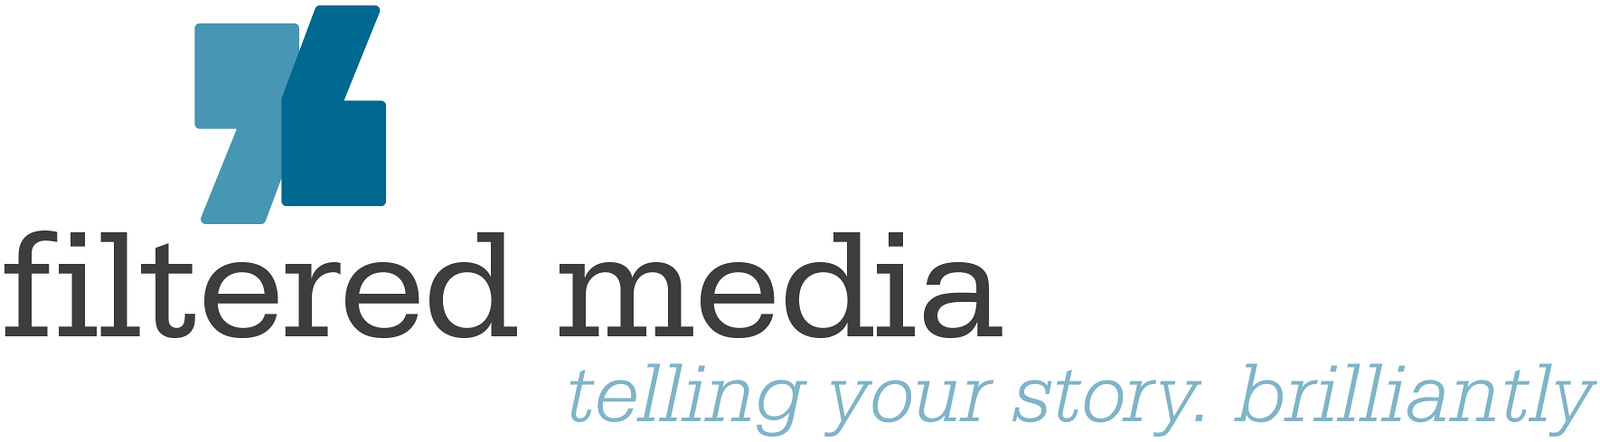 Filtered Media Logo (photo credit: Filtered Media)